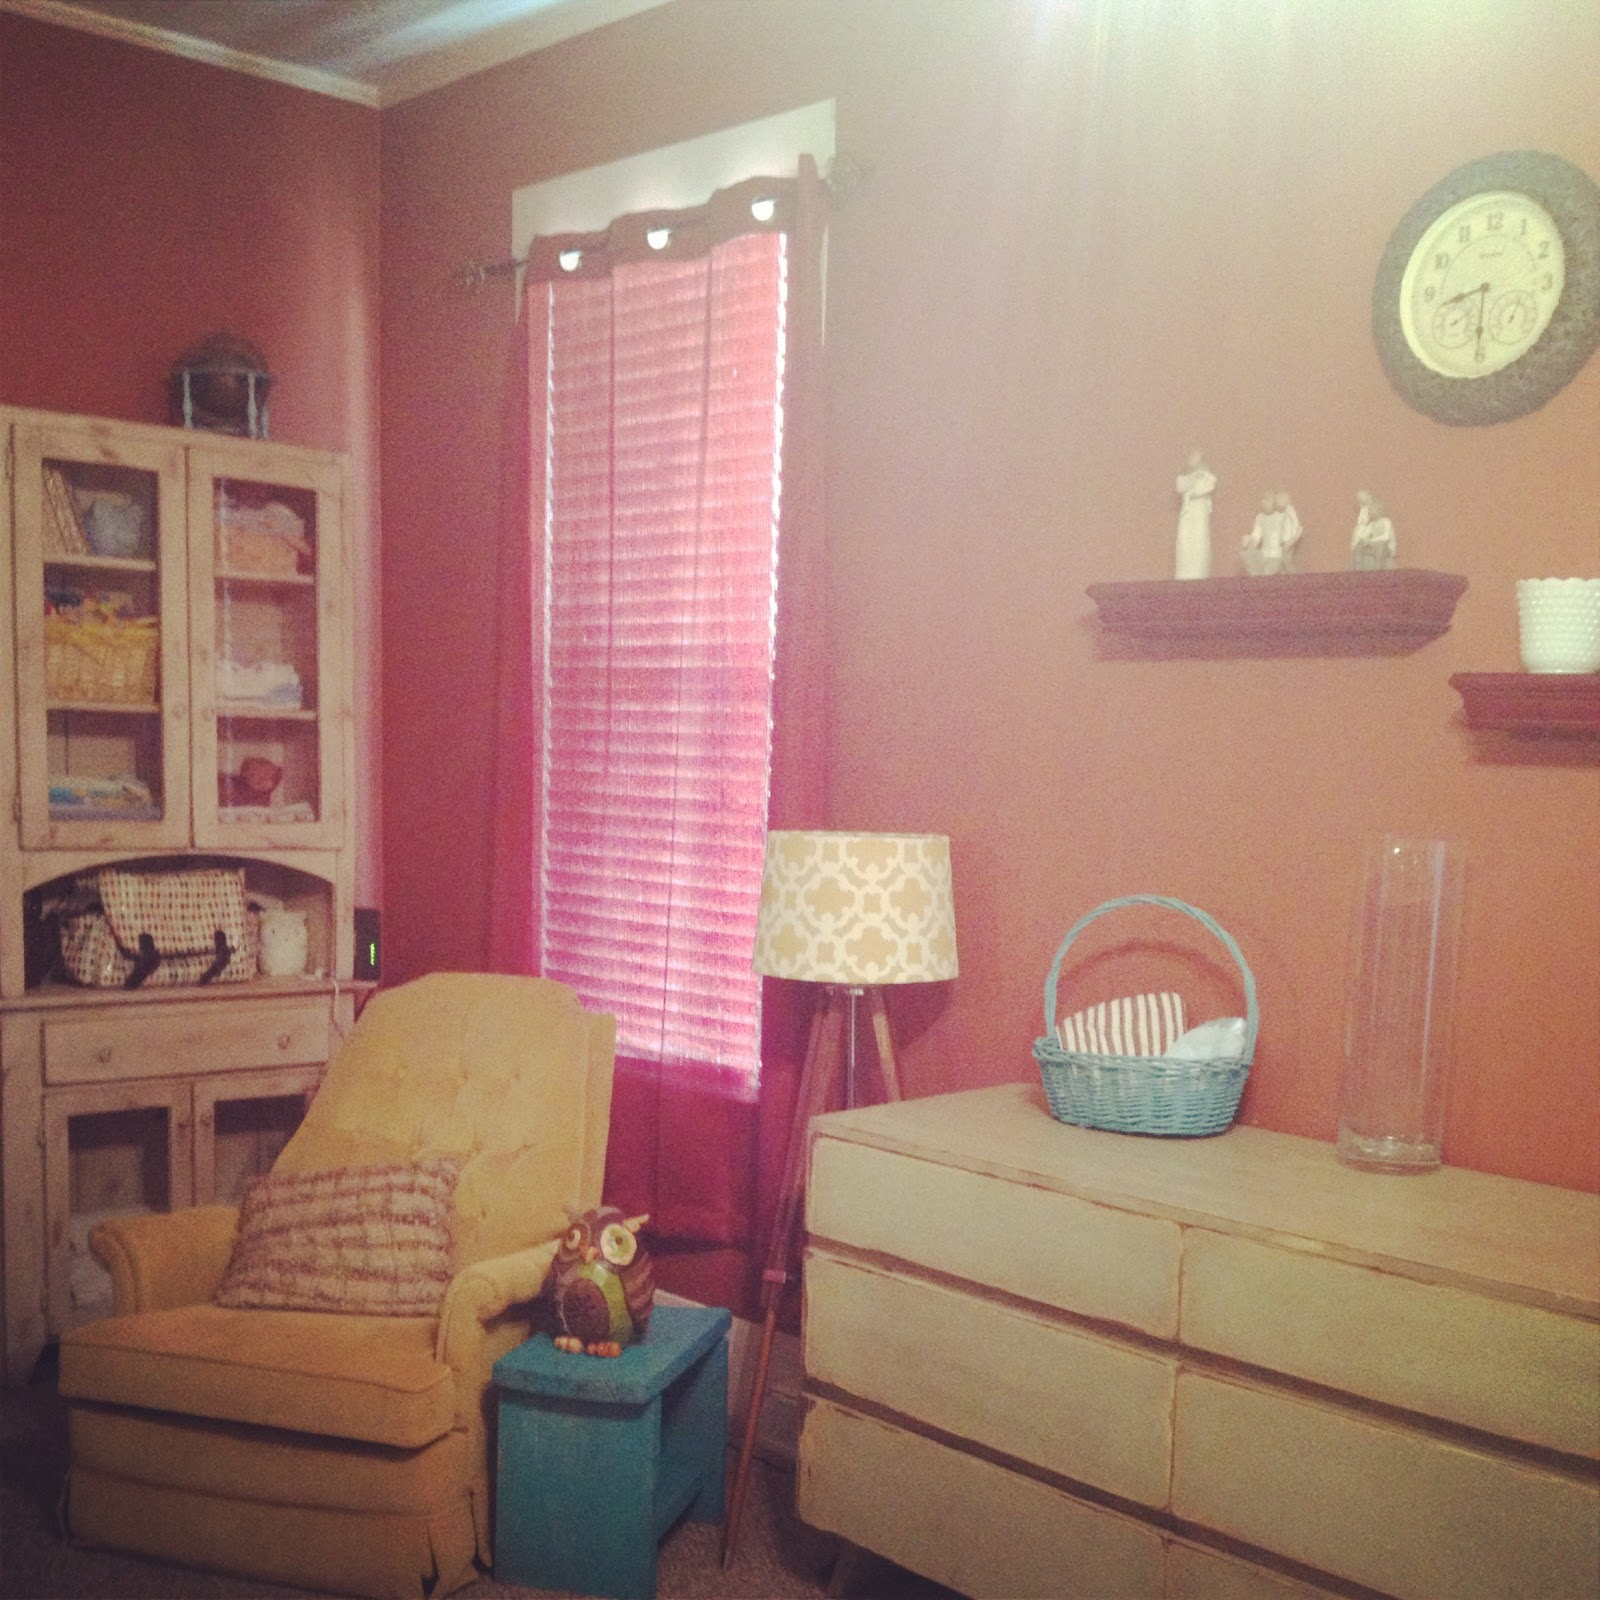 Thrifty Amp Nifty Modern Day Momma From Dining Room To Nursery